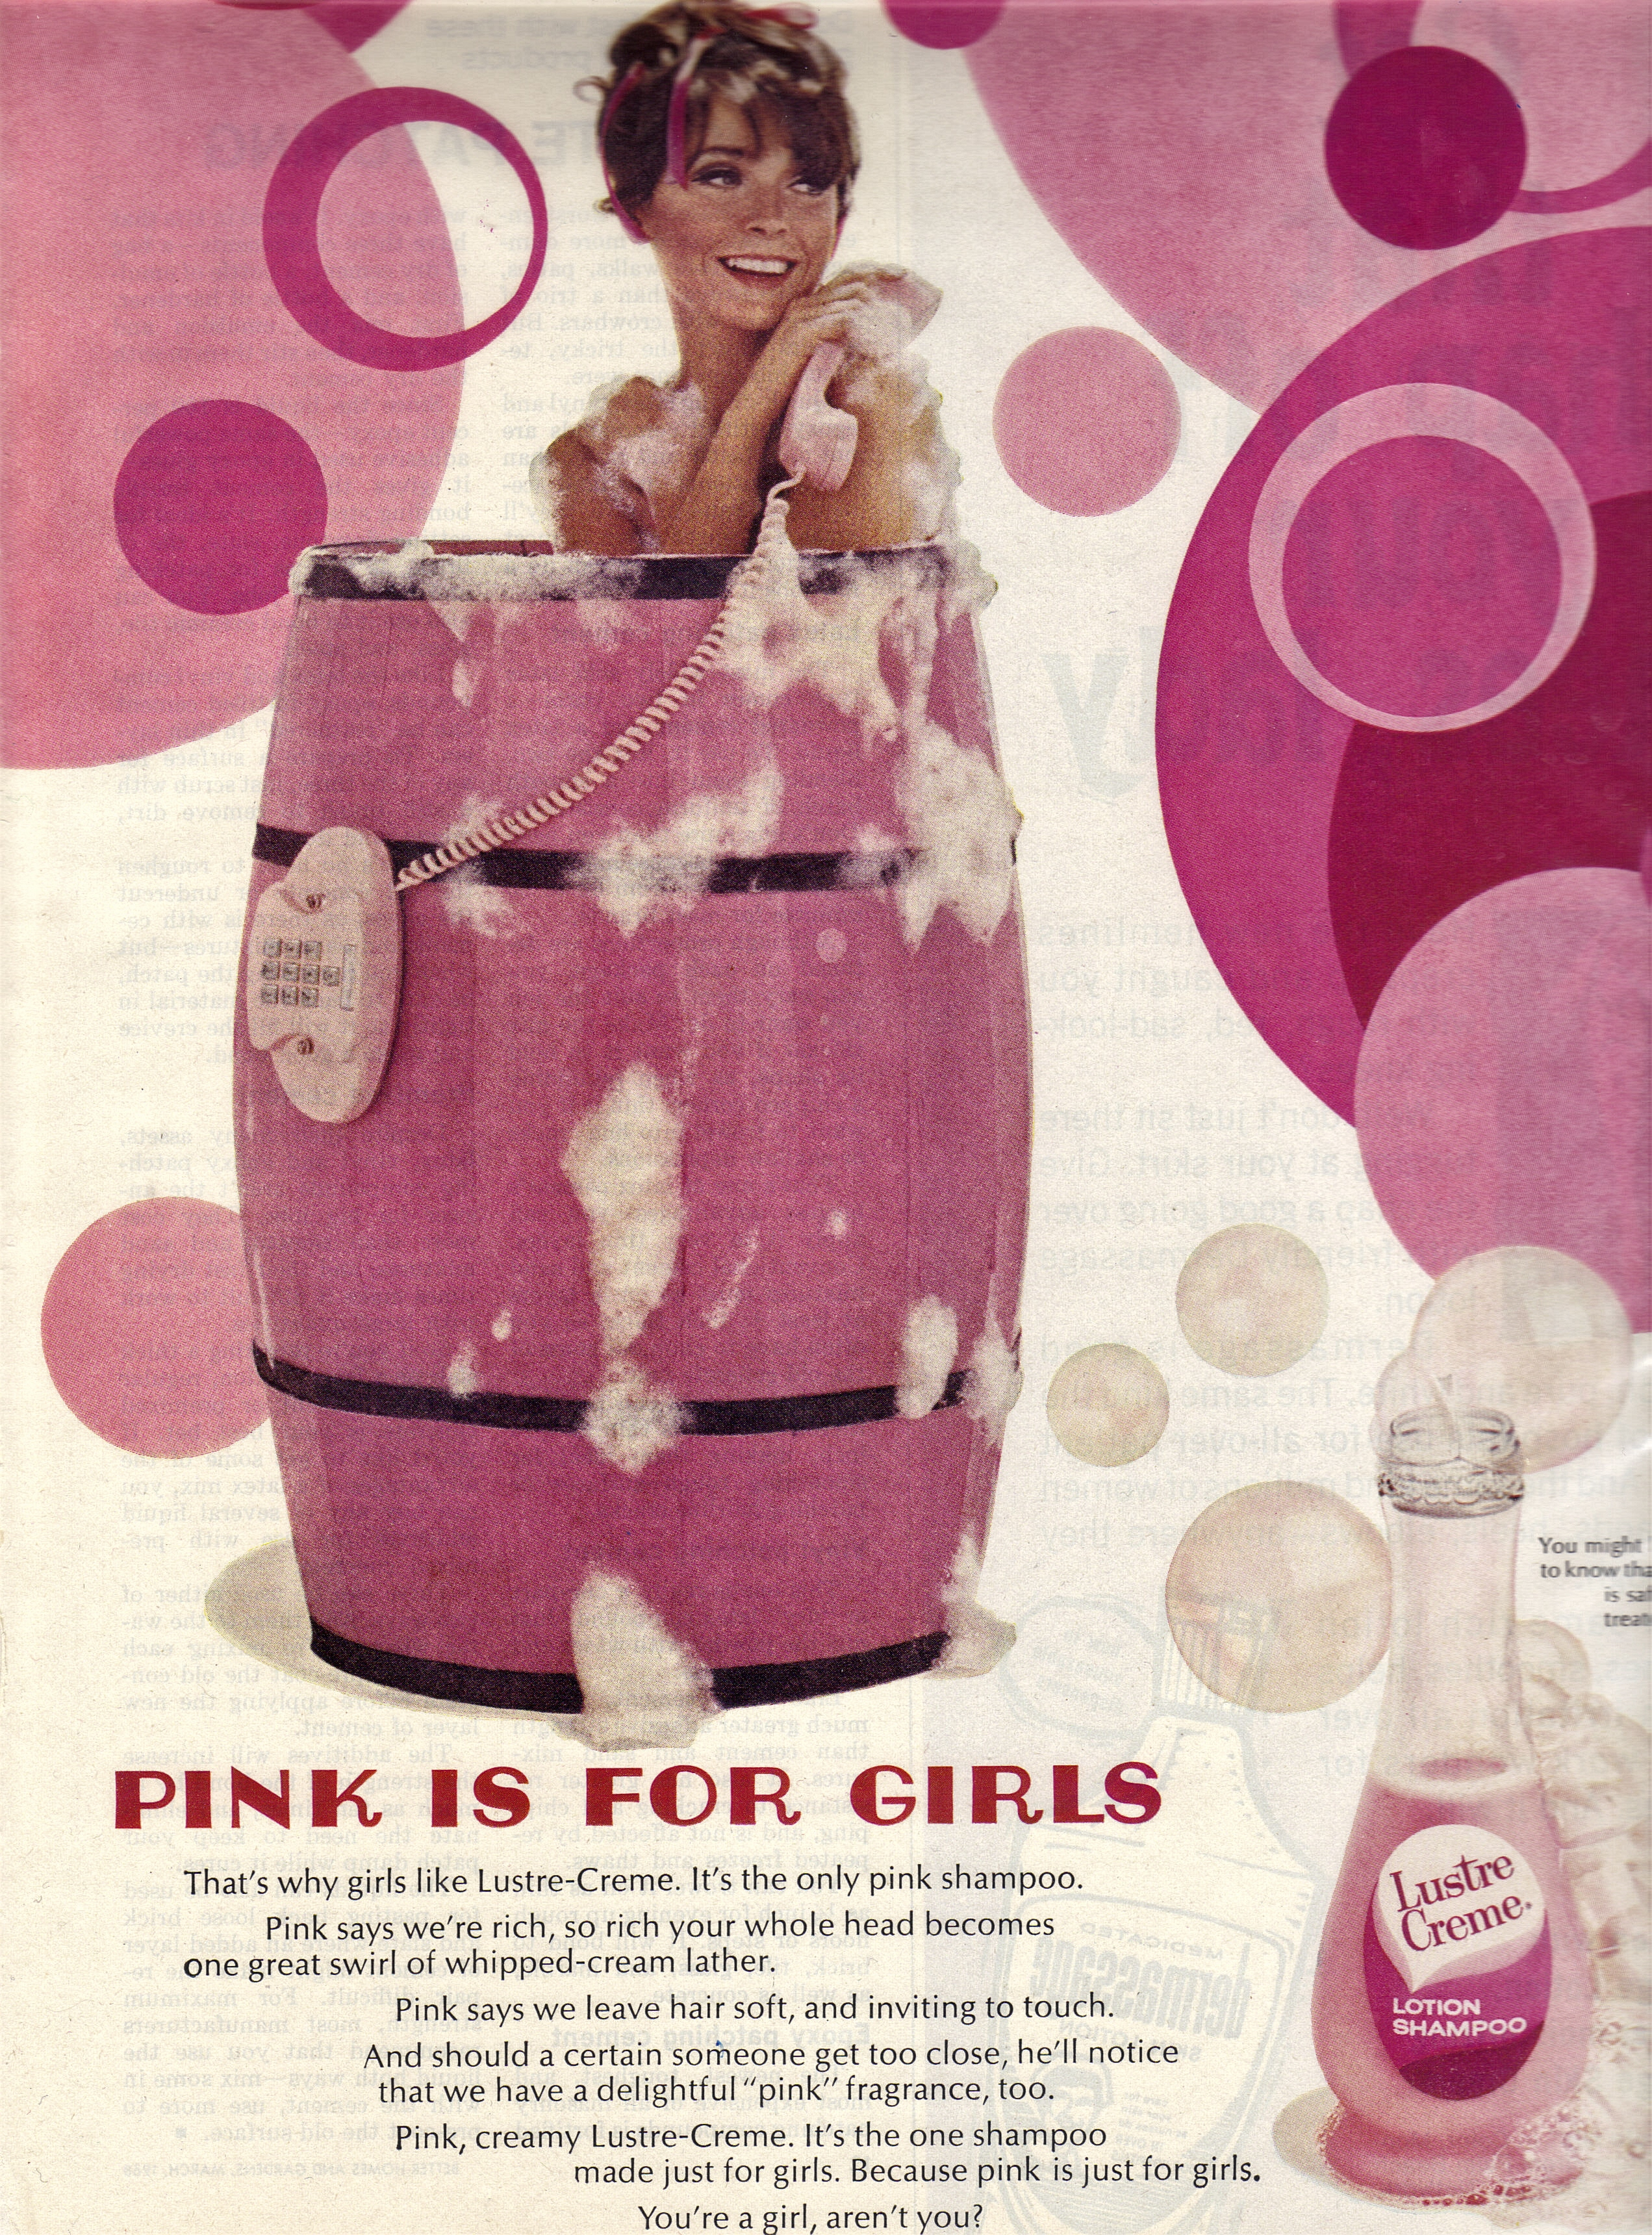 Vintage bathroom ads - This Ad Is Hanging On The Wall Of My Prodominately Pink Bathroom I Don T Hate Pink By Any Means But I Was A Bit Set Off At The Bathroom